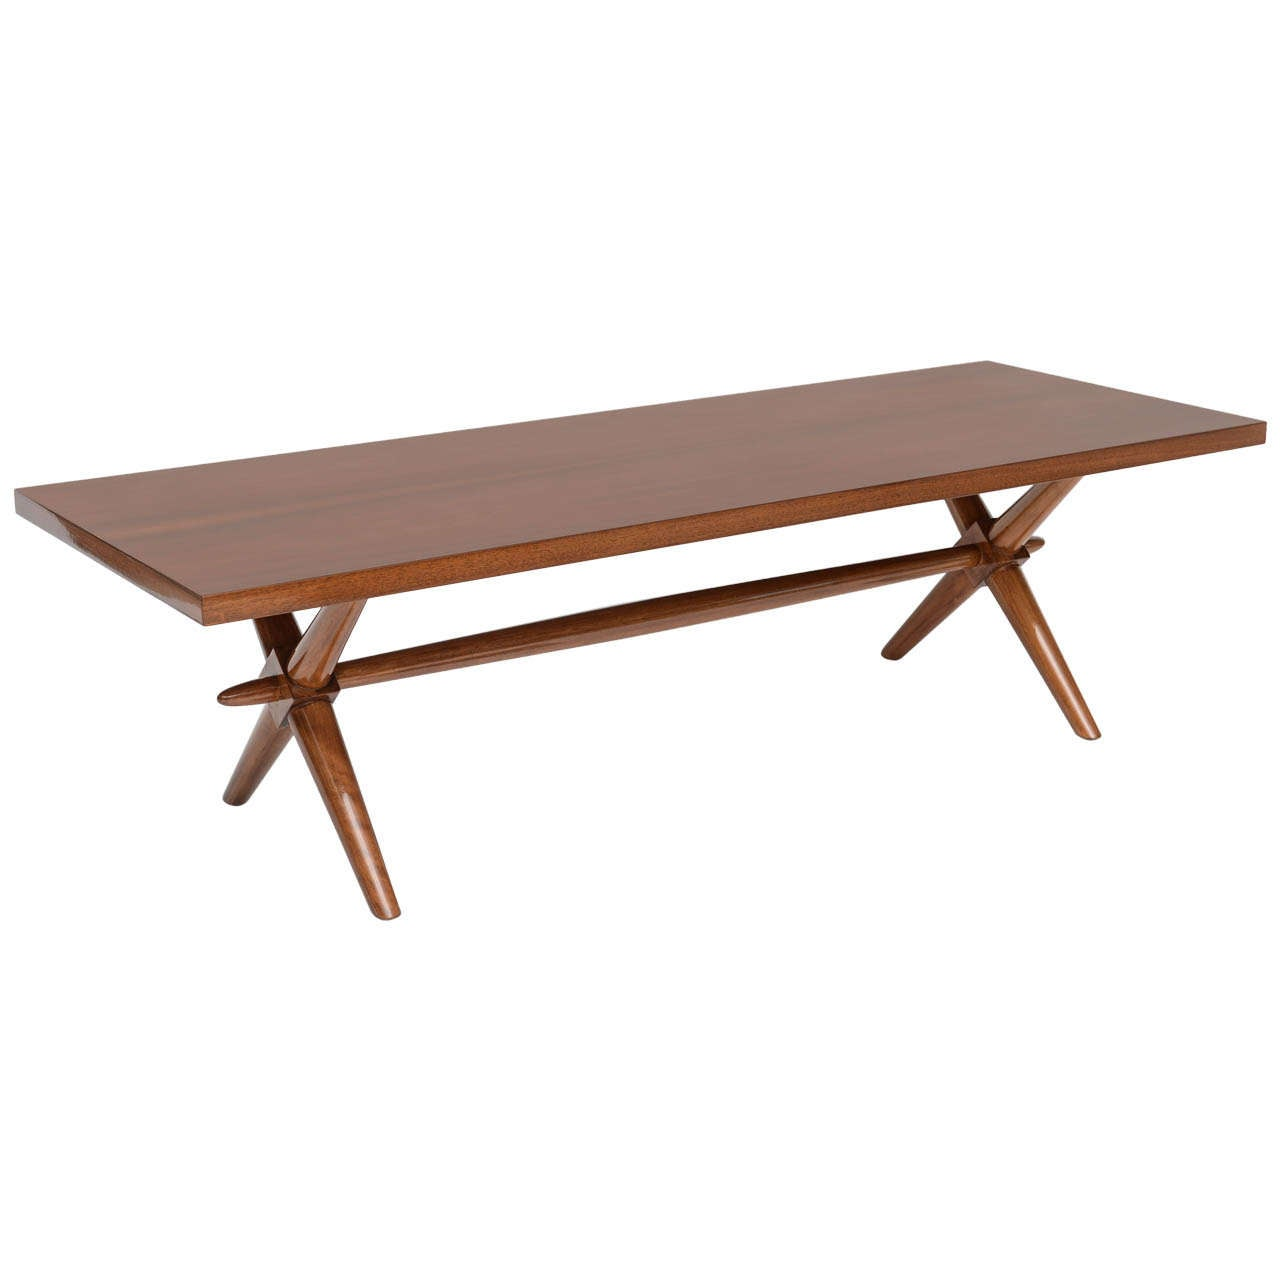 American Modern Walnut Low Table Robsjohn Gibbings For Sale At 1stdibs